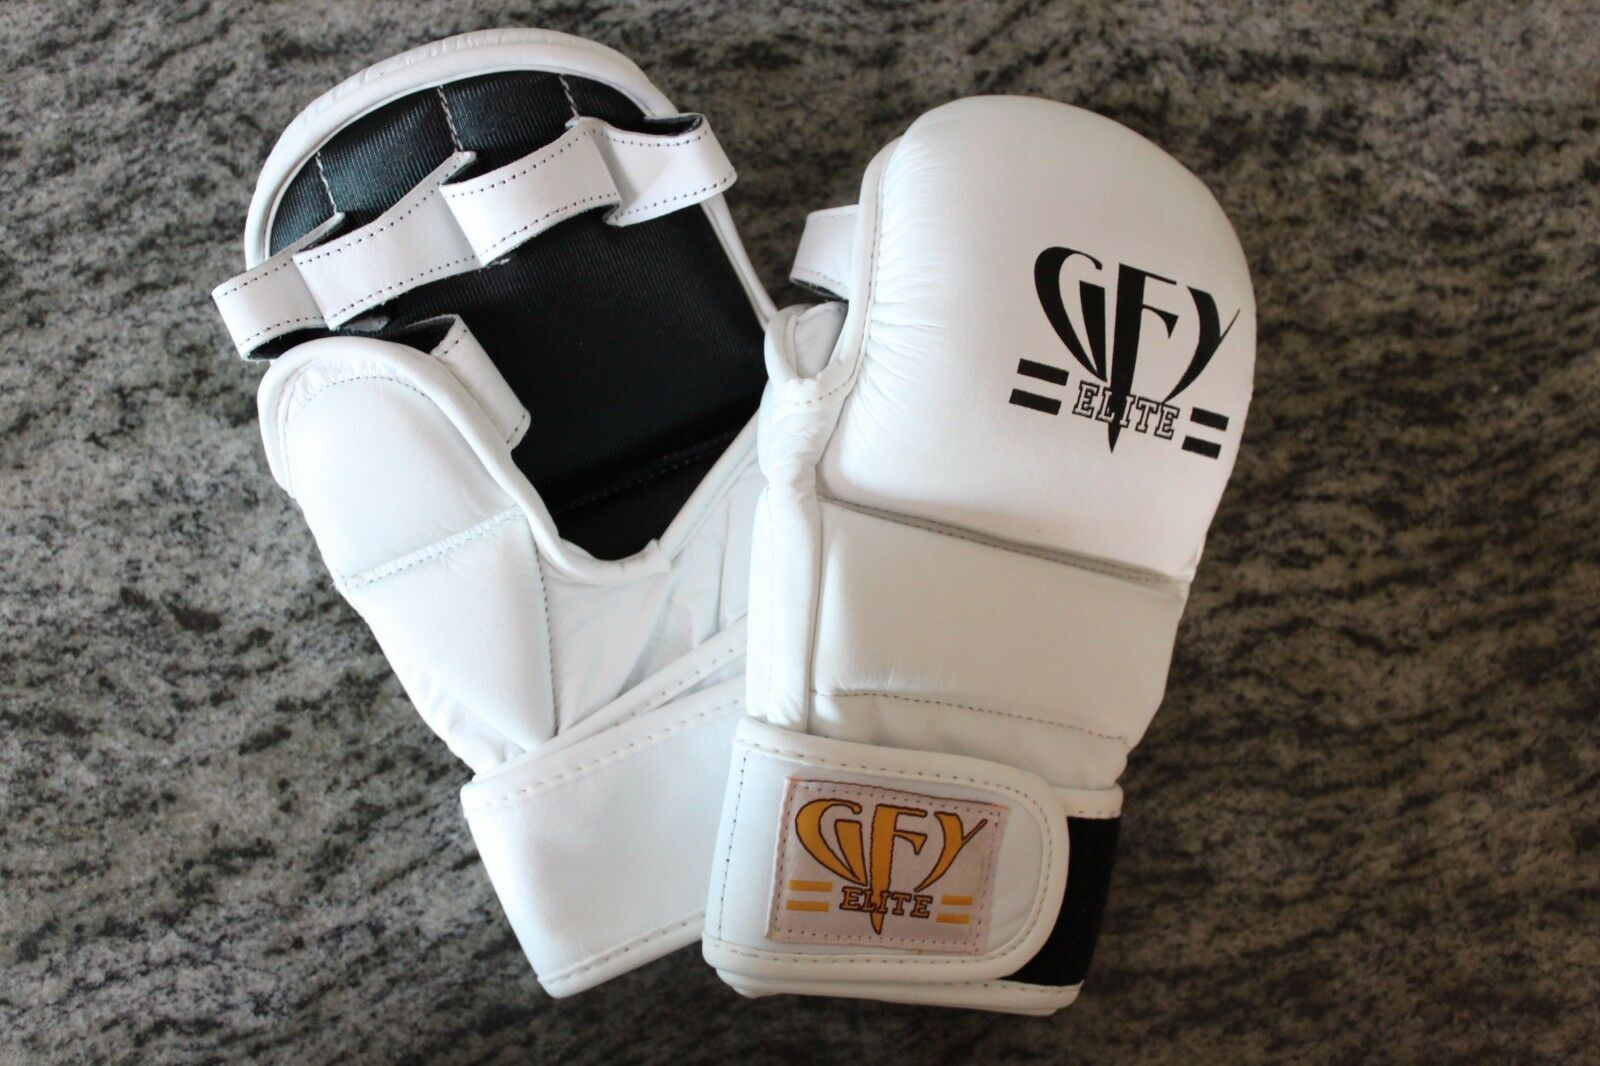 GFY ELITE MMA Leather Training G s All  Sizes  free and fast delivery available